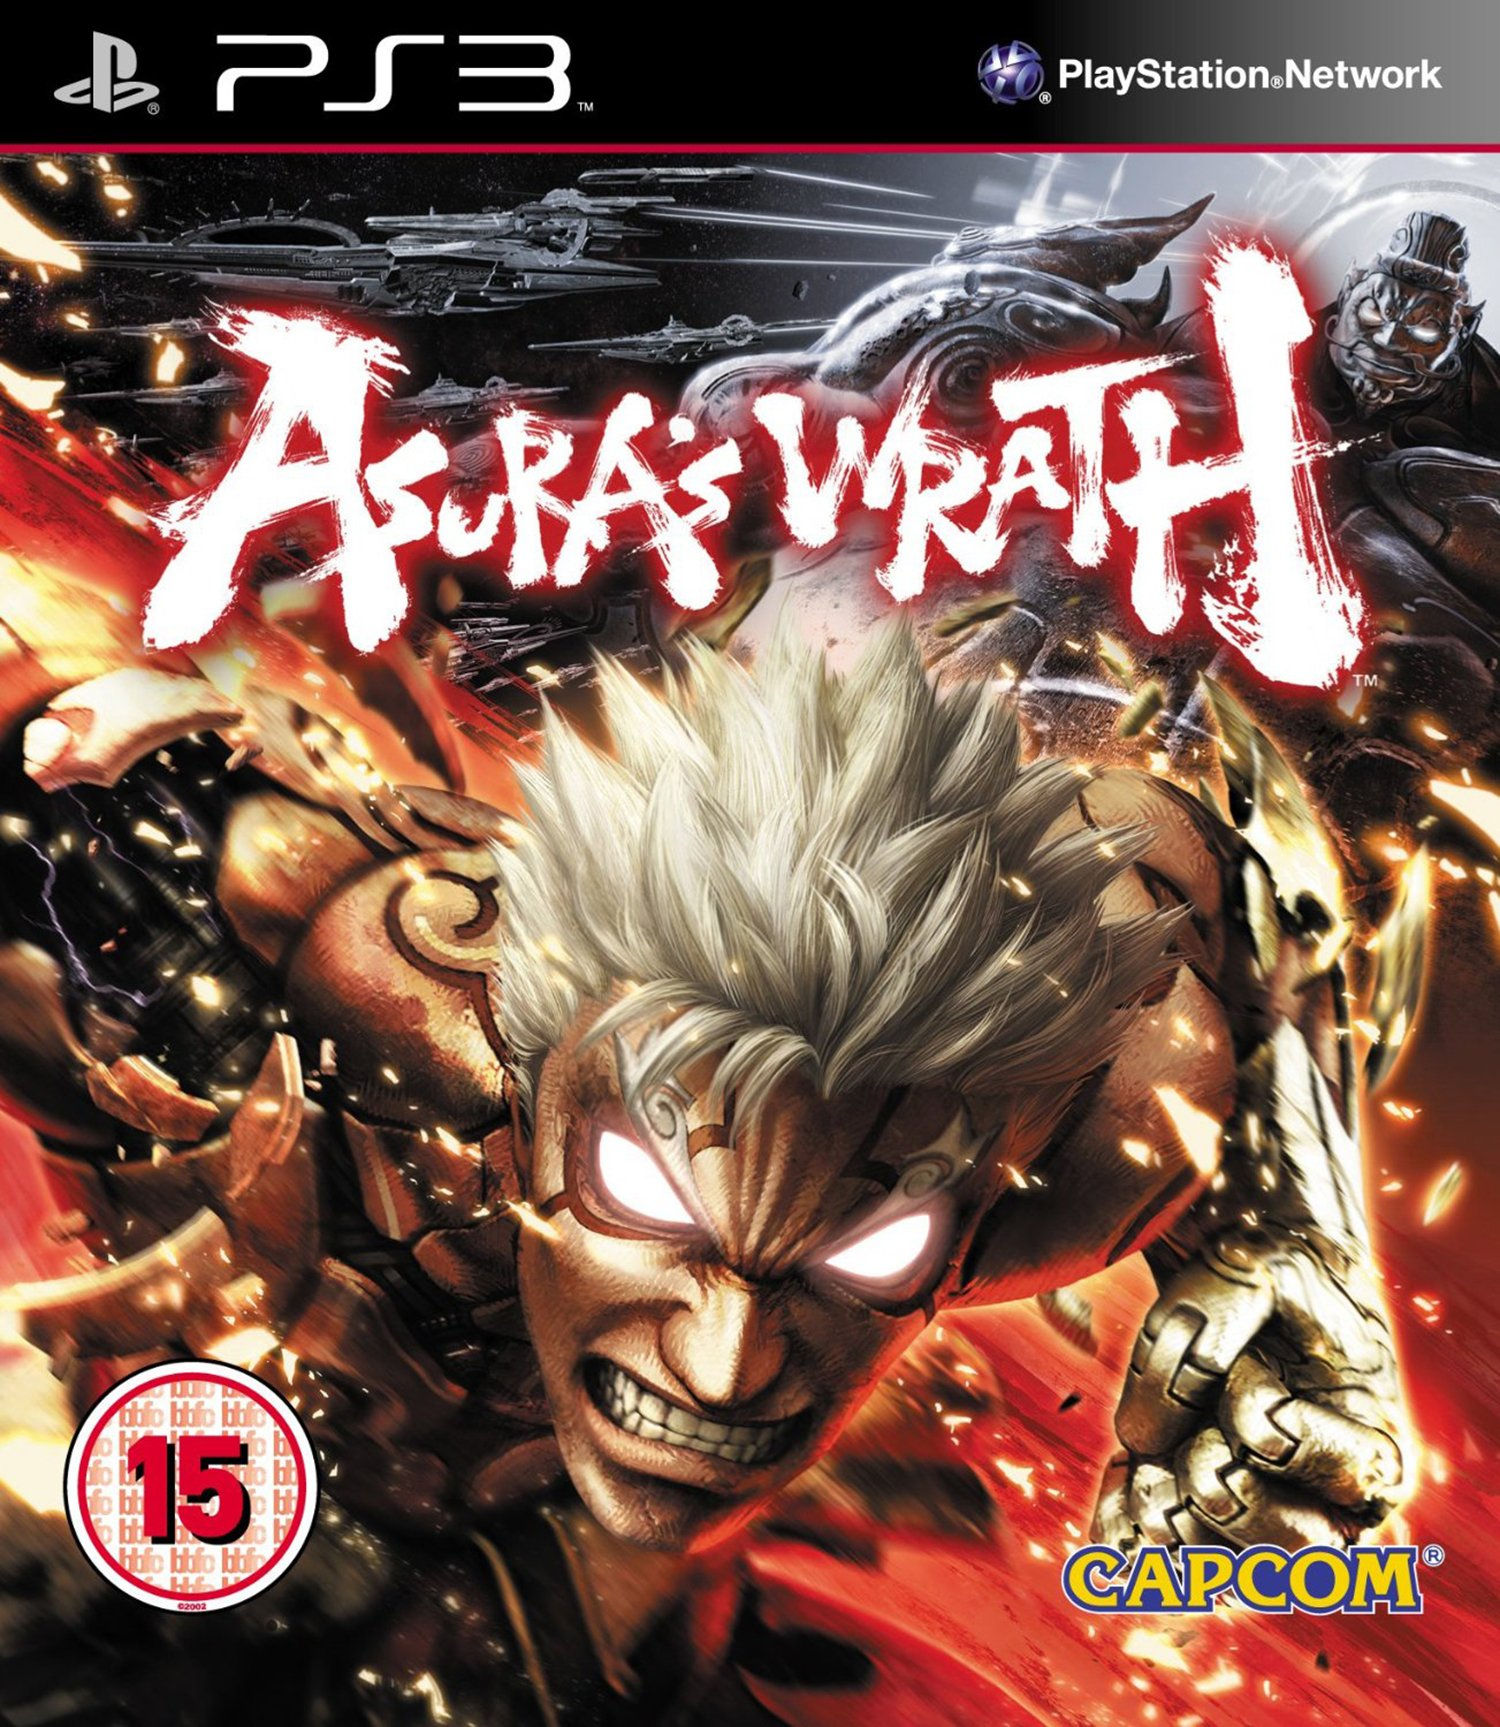 Image of Asura's Wrath - PS3 Game.